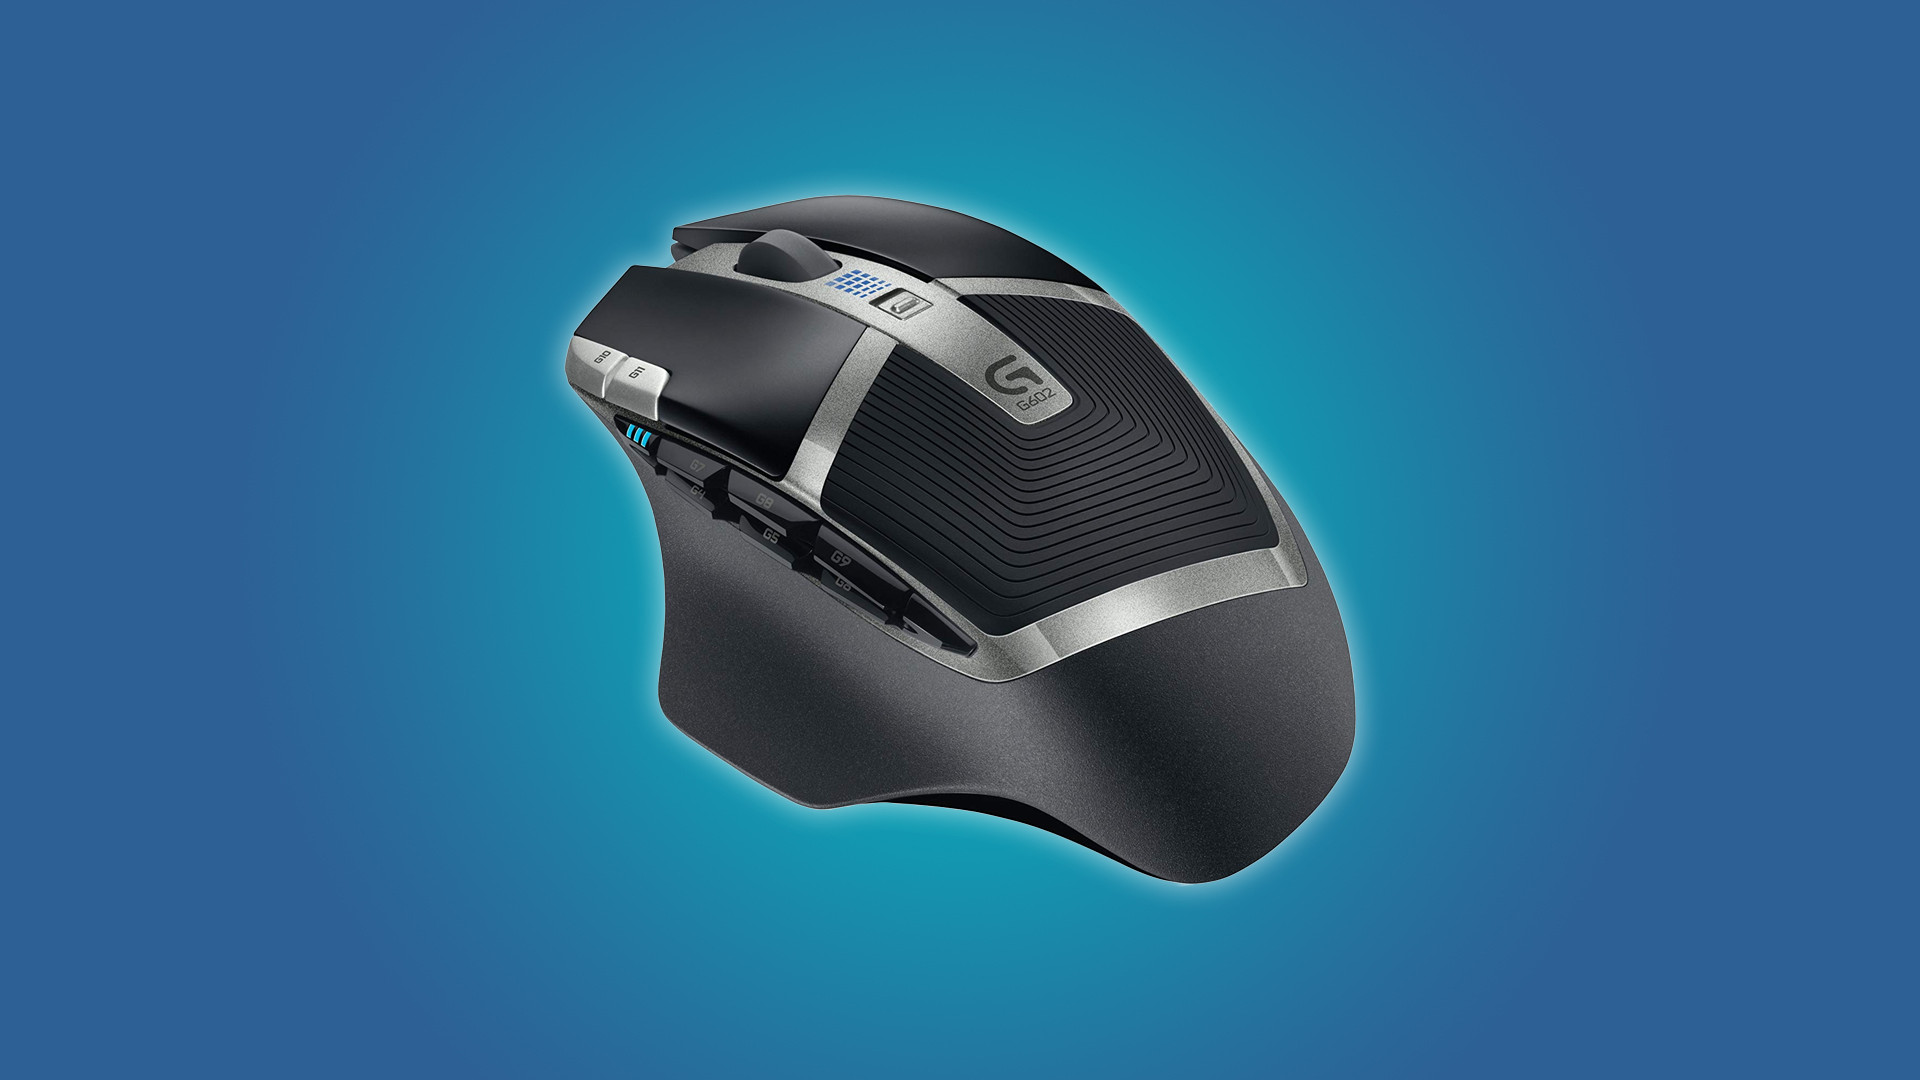 Deal Alert: Score a Logitech G602 Wireless Gaming Mouse for